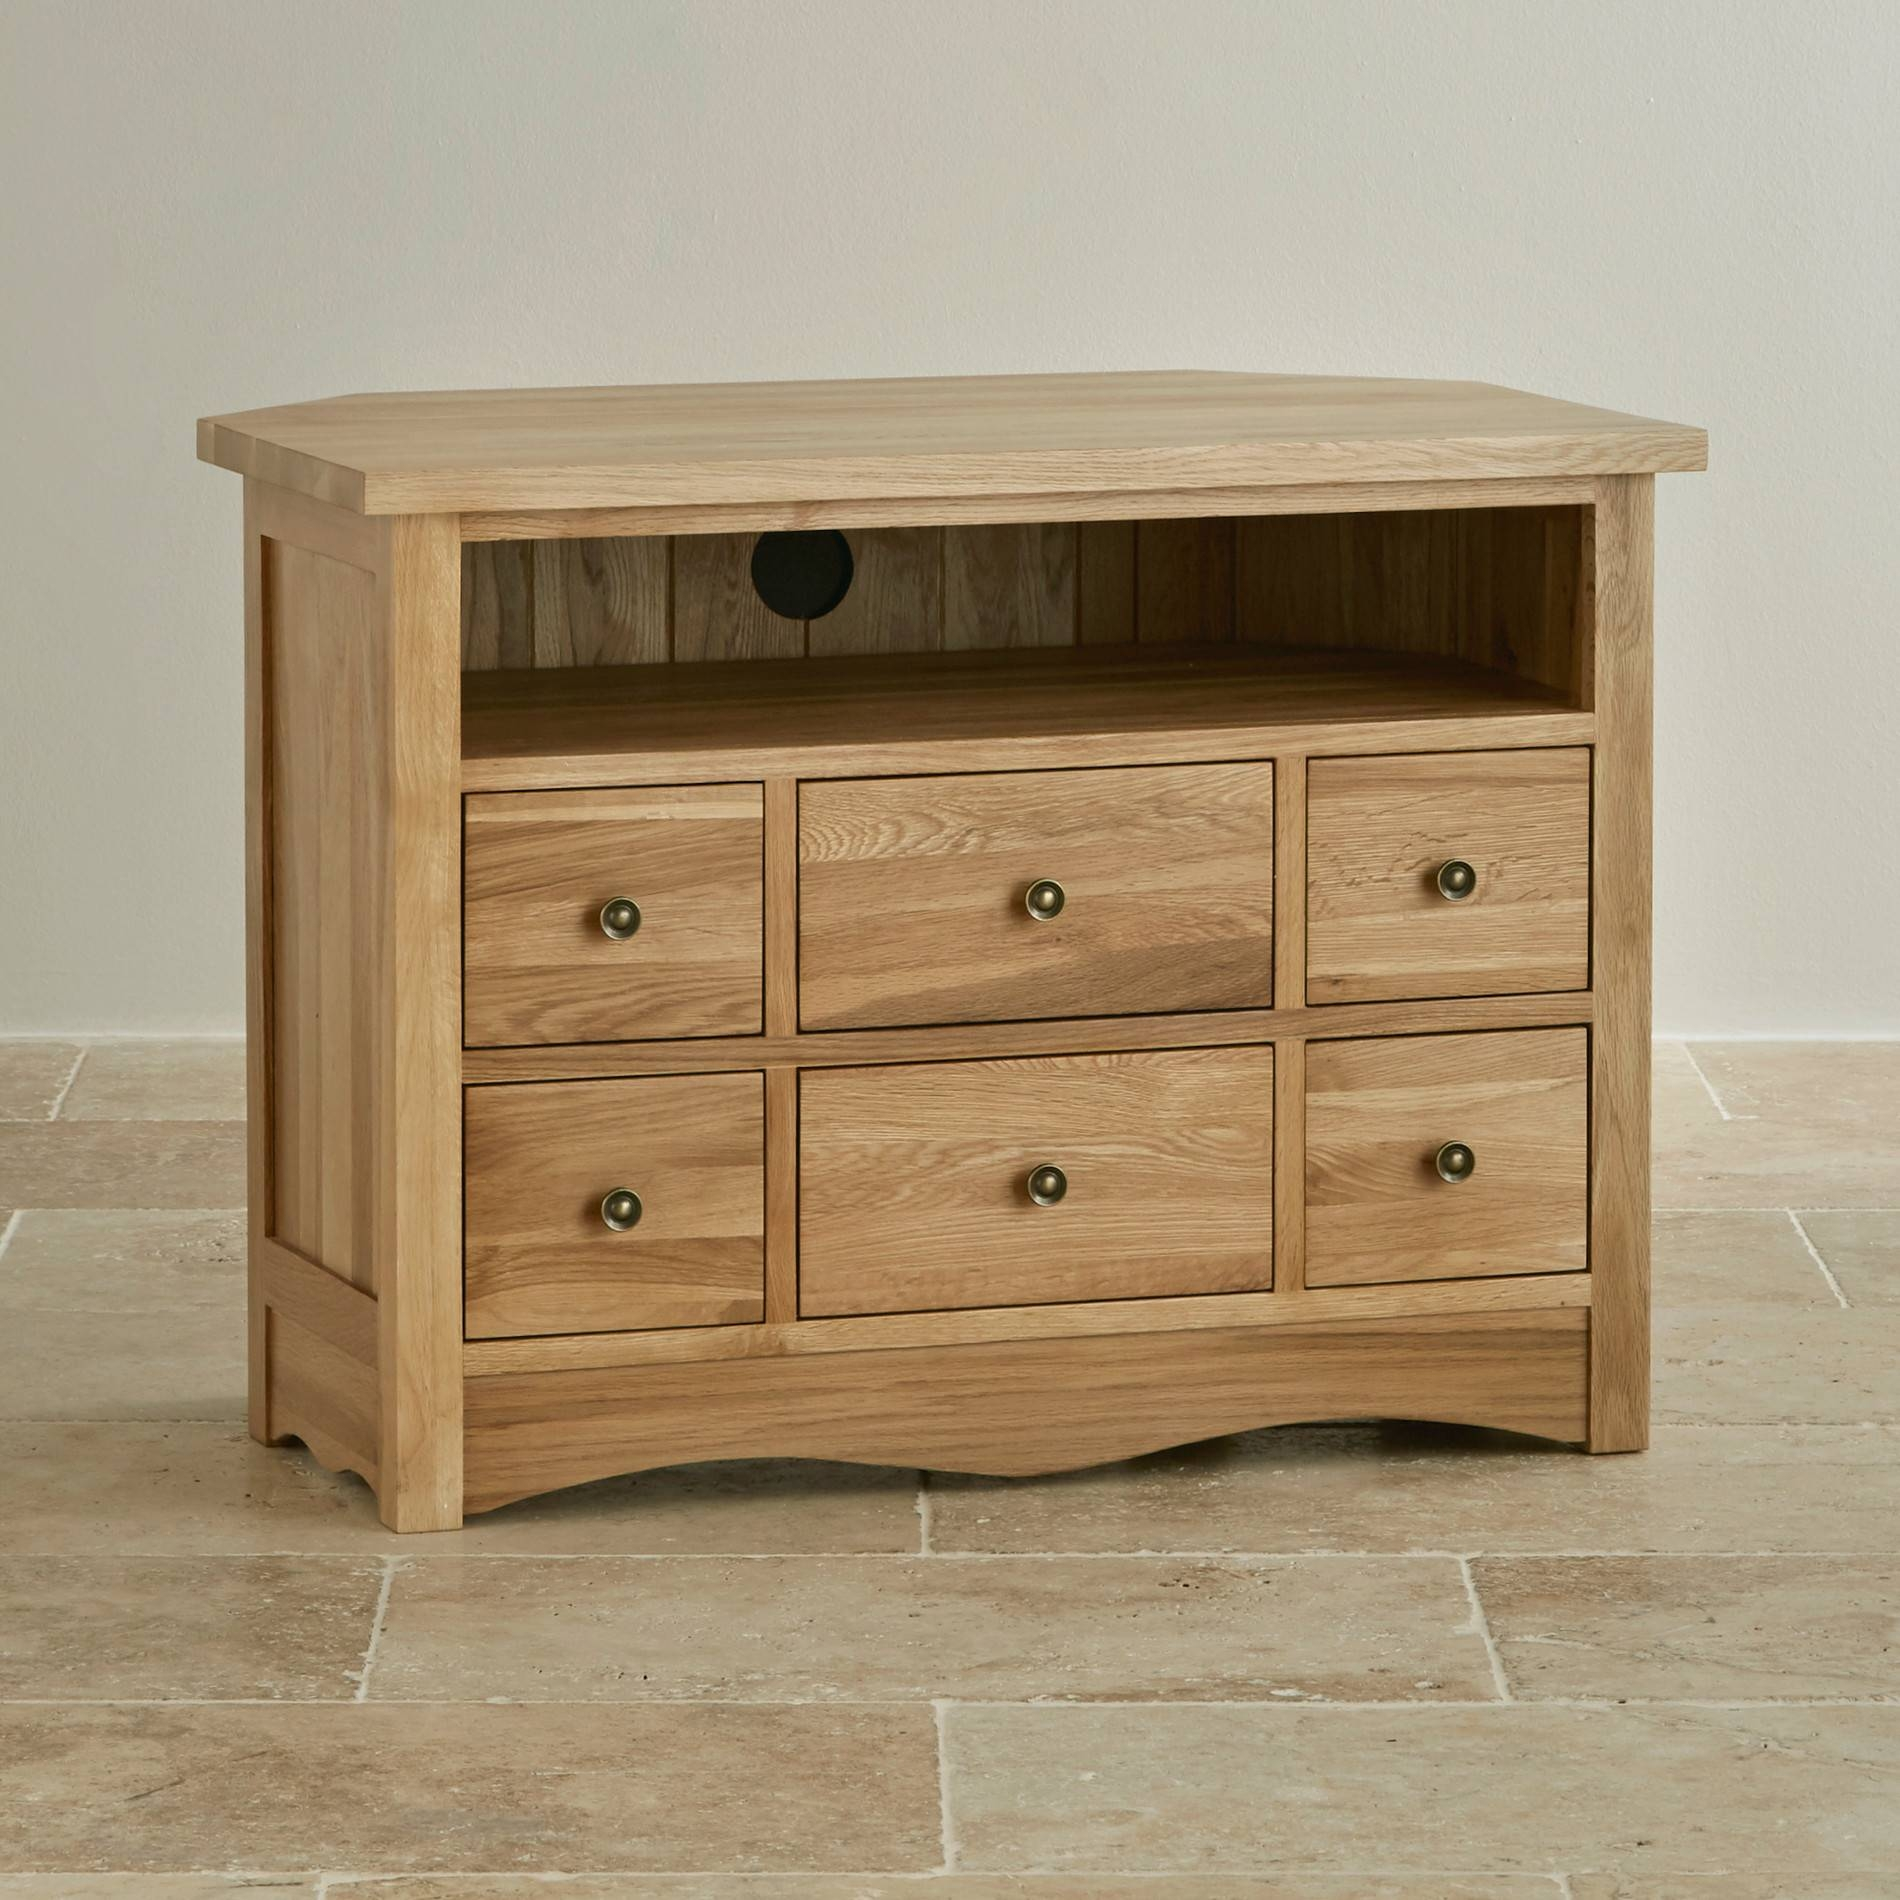 Cairo Corner Tv Cabinet In Natural Solid Oak | Oak Furniture Land For Tv Cabinets Corner Units (View 1 of 15)